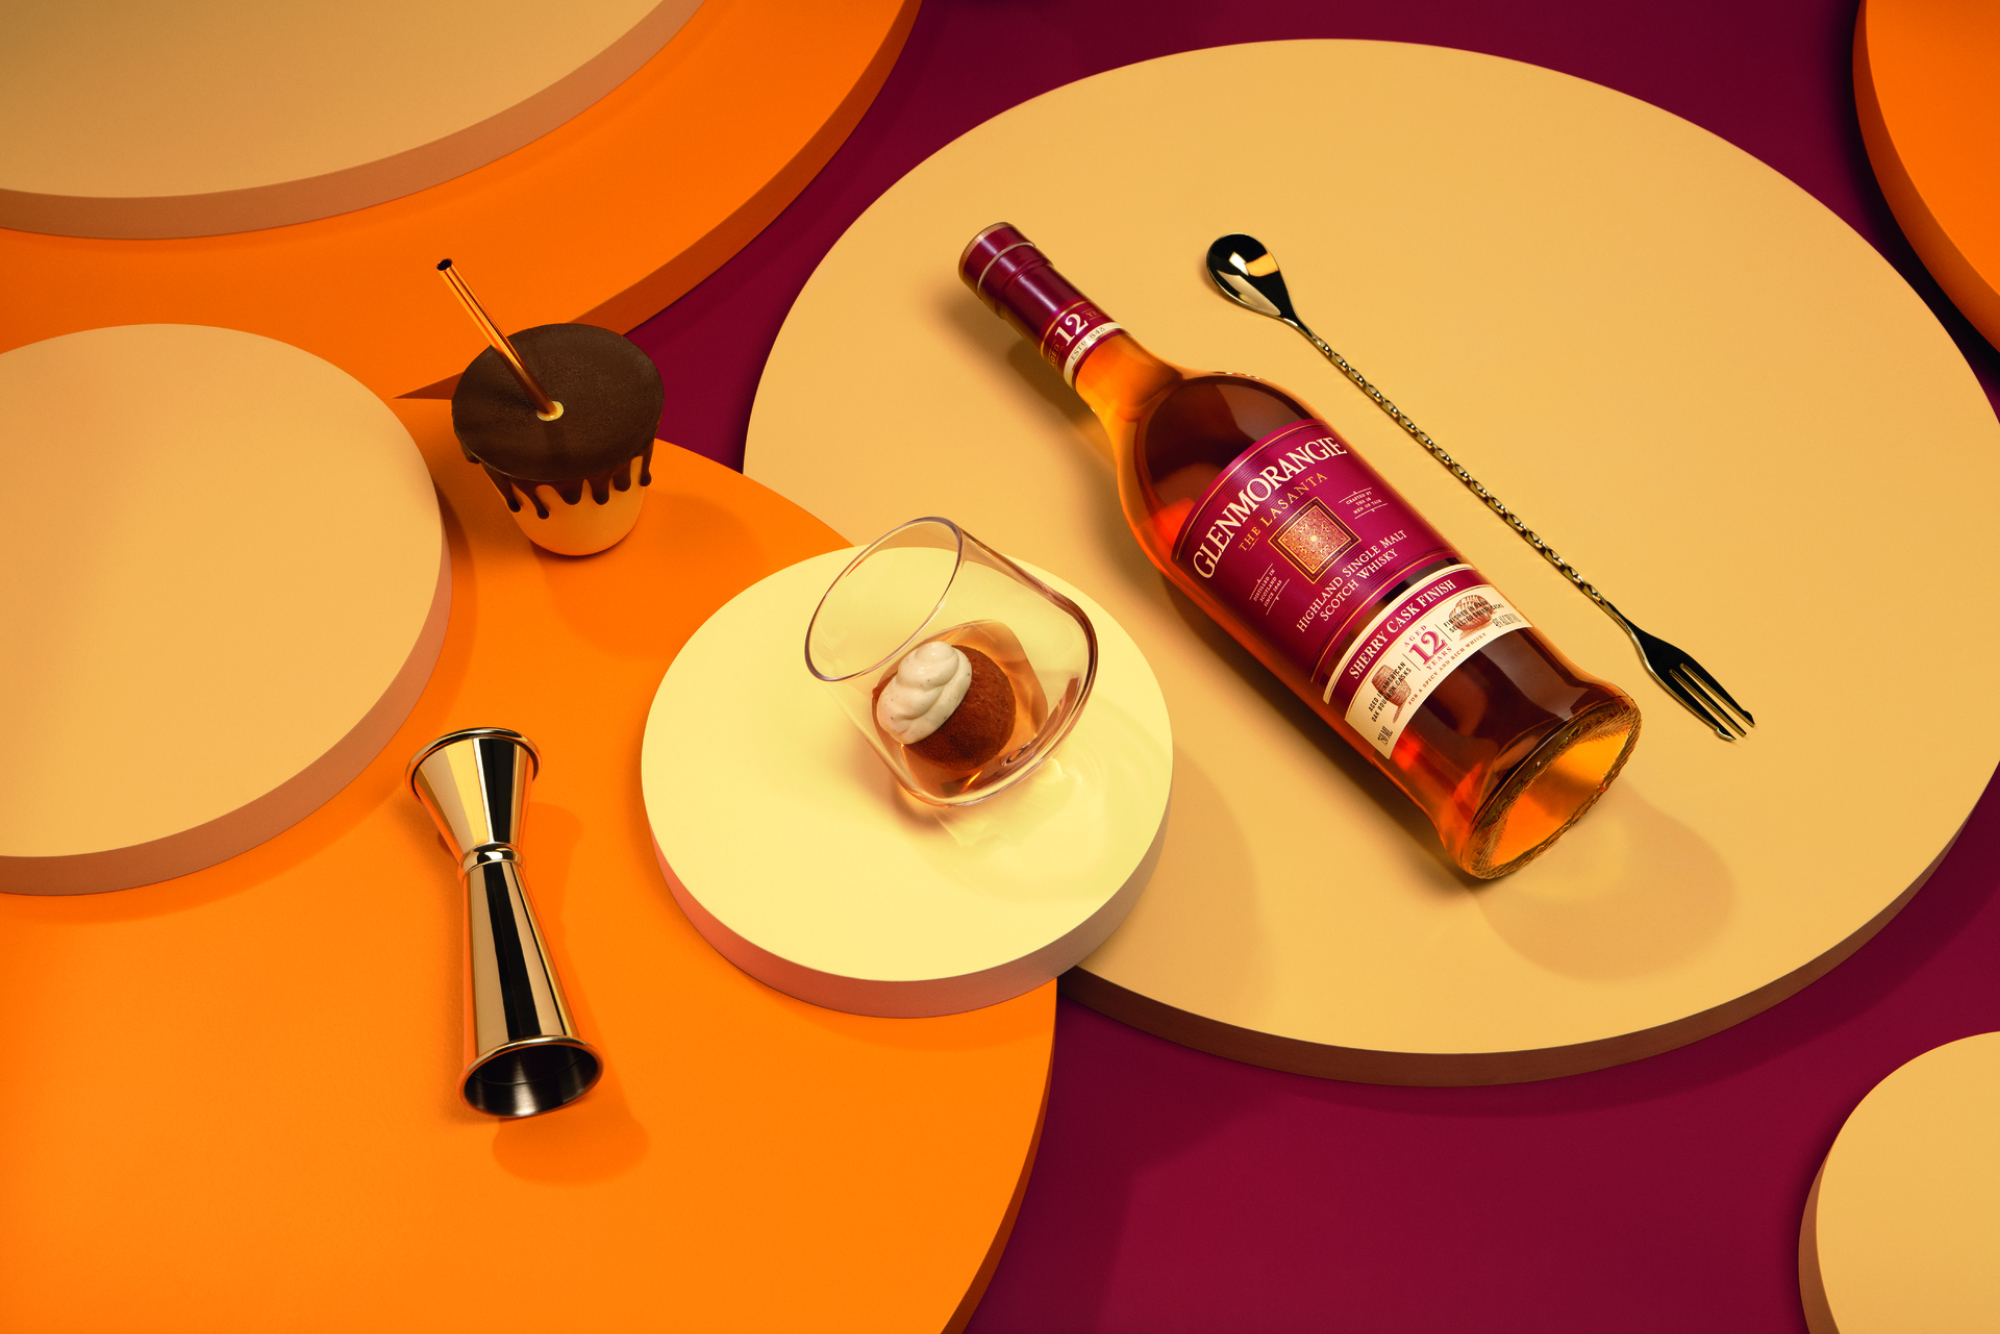 Ansel's Caketails also includes a pairing with Glenmorangie's The Lasanta